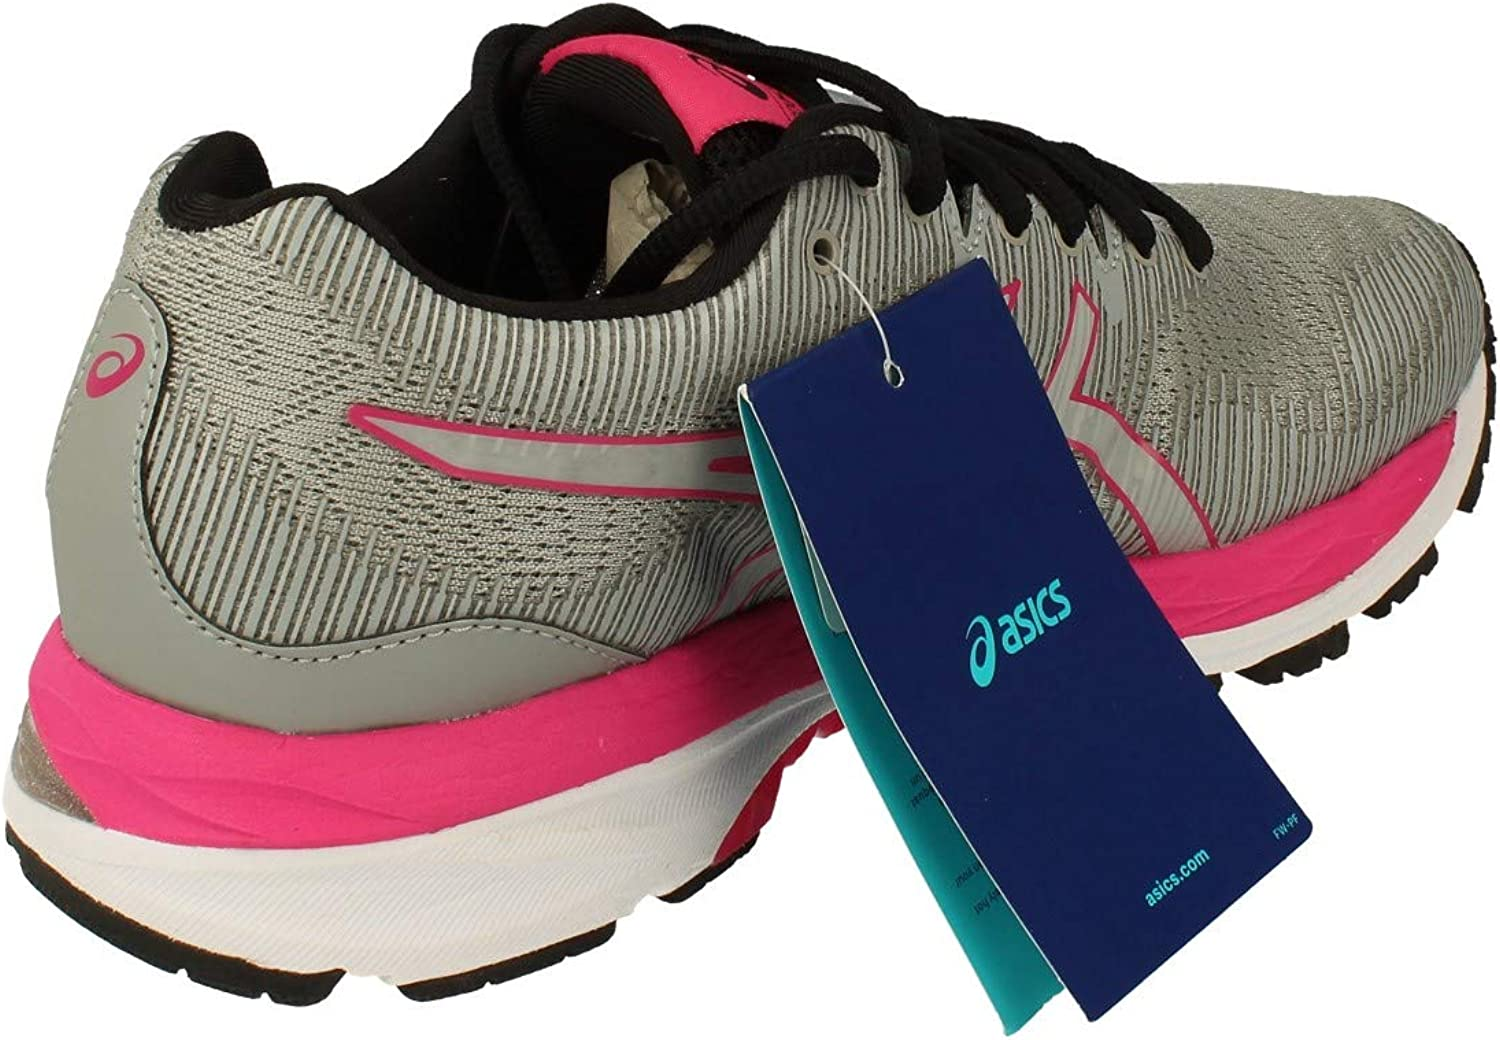 Asics Gel-Ziruss 2 Mujeres Running Trainers 1012A014 Sneakers Zapatos: Amazon.es: Zapatos y complementos